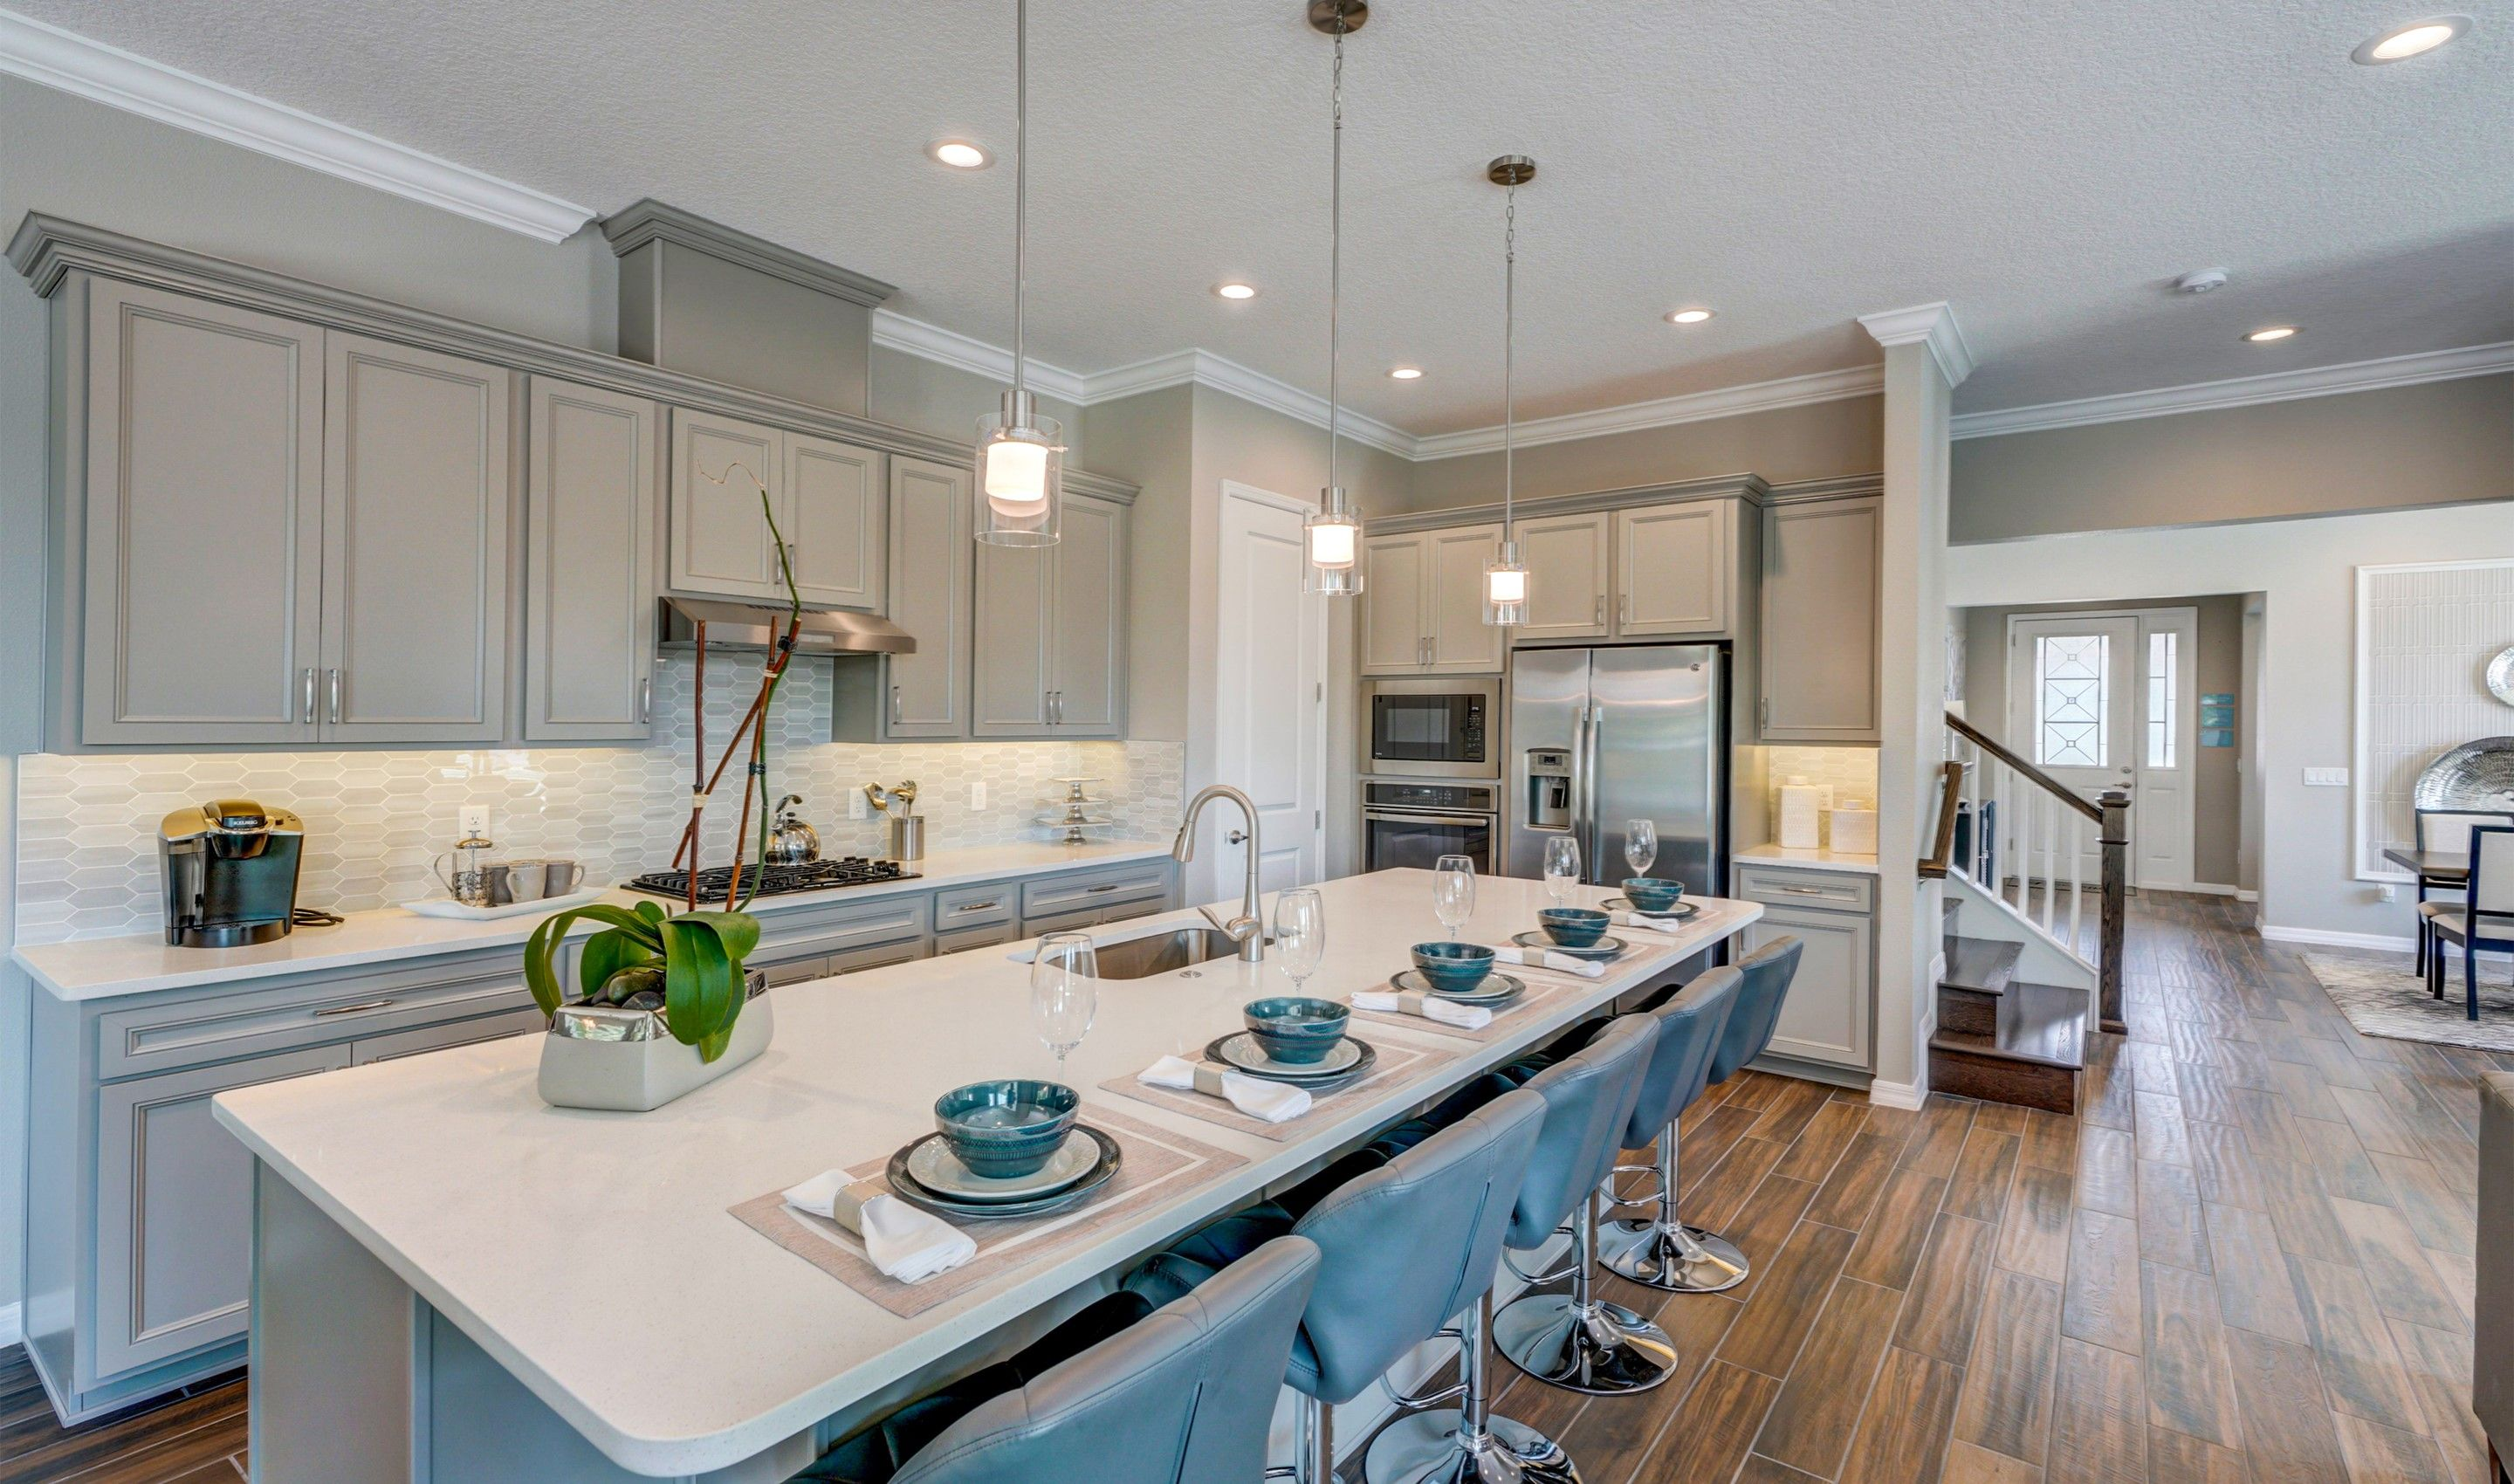 Kitchen featured in the Michelson By K. Hovnanian® Homes in Orlando, FL